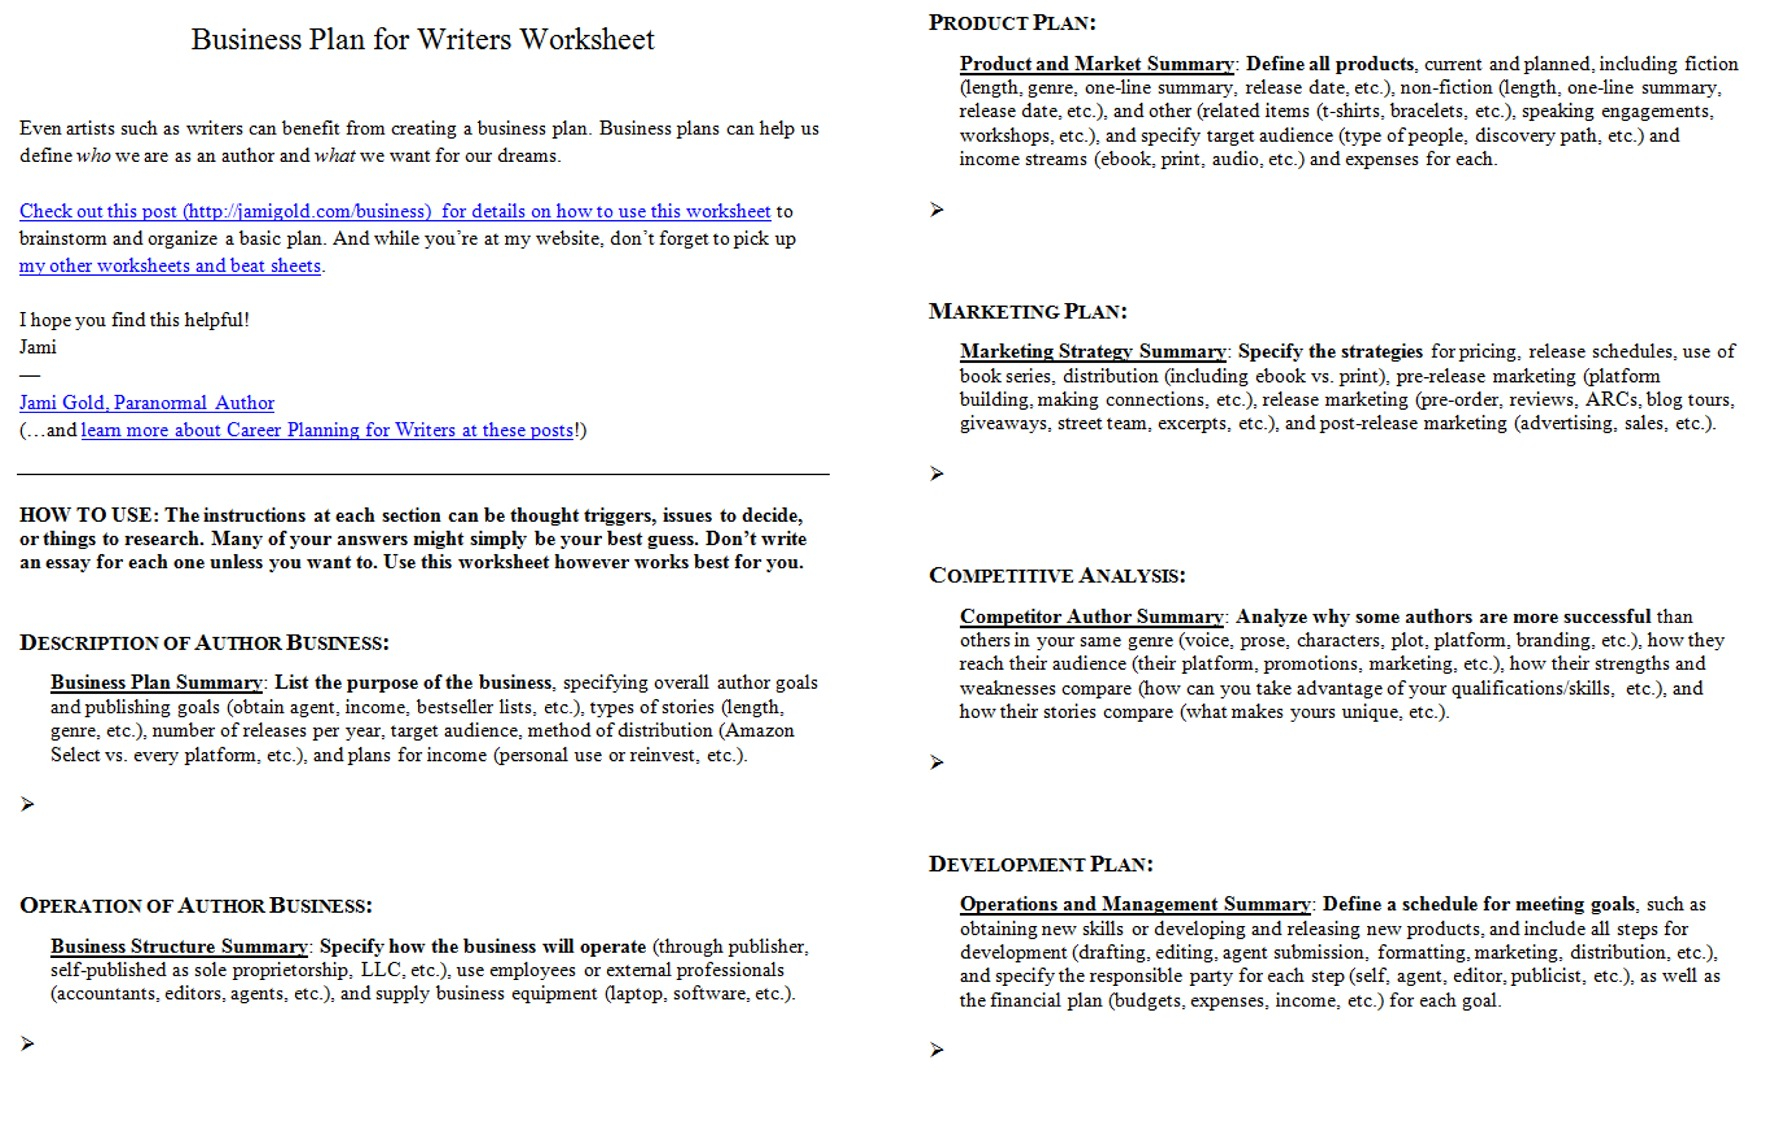 Aldiablosus  Personable Worksheets For Writers  Jami Gold Paranormal Author With Fascinating Screen Shot Of Both Pages Of The Business Plan For Writers Worksheet With Adorable Short Vowel Sort Worksheet Also Graphing Worksheets Grade  In Addition Th Grade Esl Worksheets And Suffixes Ful And Less Worksheets As Well As Two Point Perspective Worksheets Additionally Treasure Hunt Worksheet From Jamigoldcom With Aldiablosus  Fascinating Worksheets For Writers  Jami Gold Paranormal Author With Adorable Screen Shot Of Both Pages Of The Business Plan For Writers Worksheet And Personable Short Vowel Sort Worksheet Also Graphing Worksheets Grade  In Addition Th Grade Esl Worksheets From Jamigoldcom